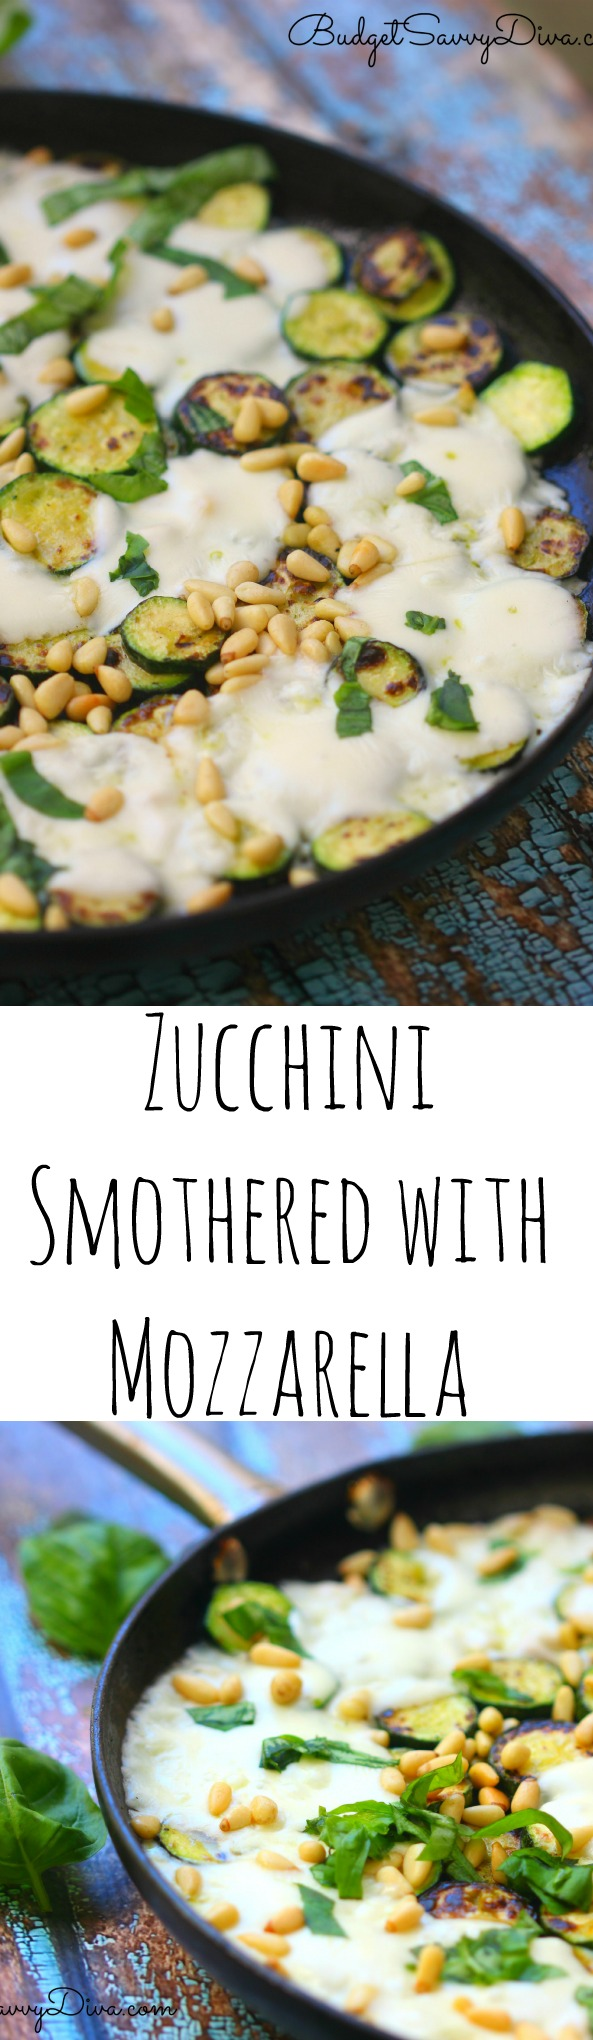 Zucchini Smothered with Mozzarella